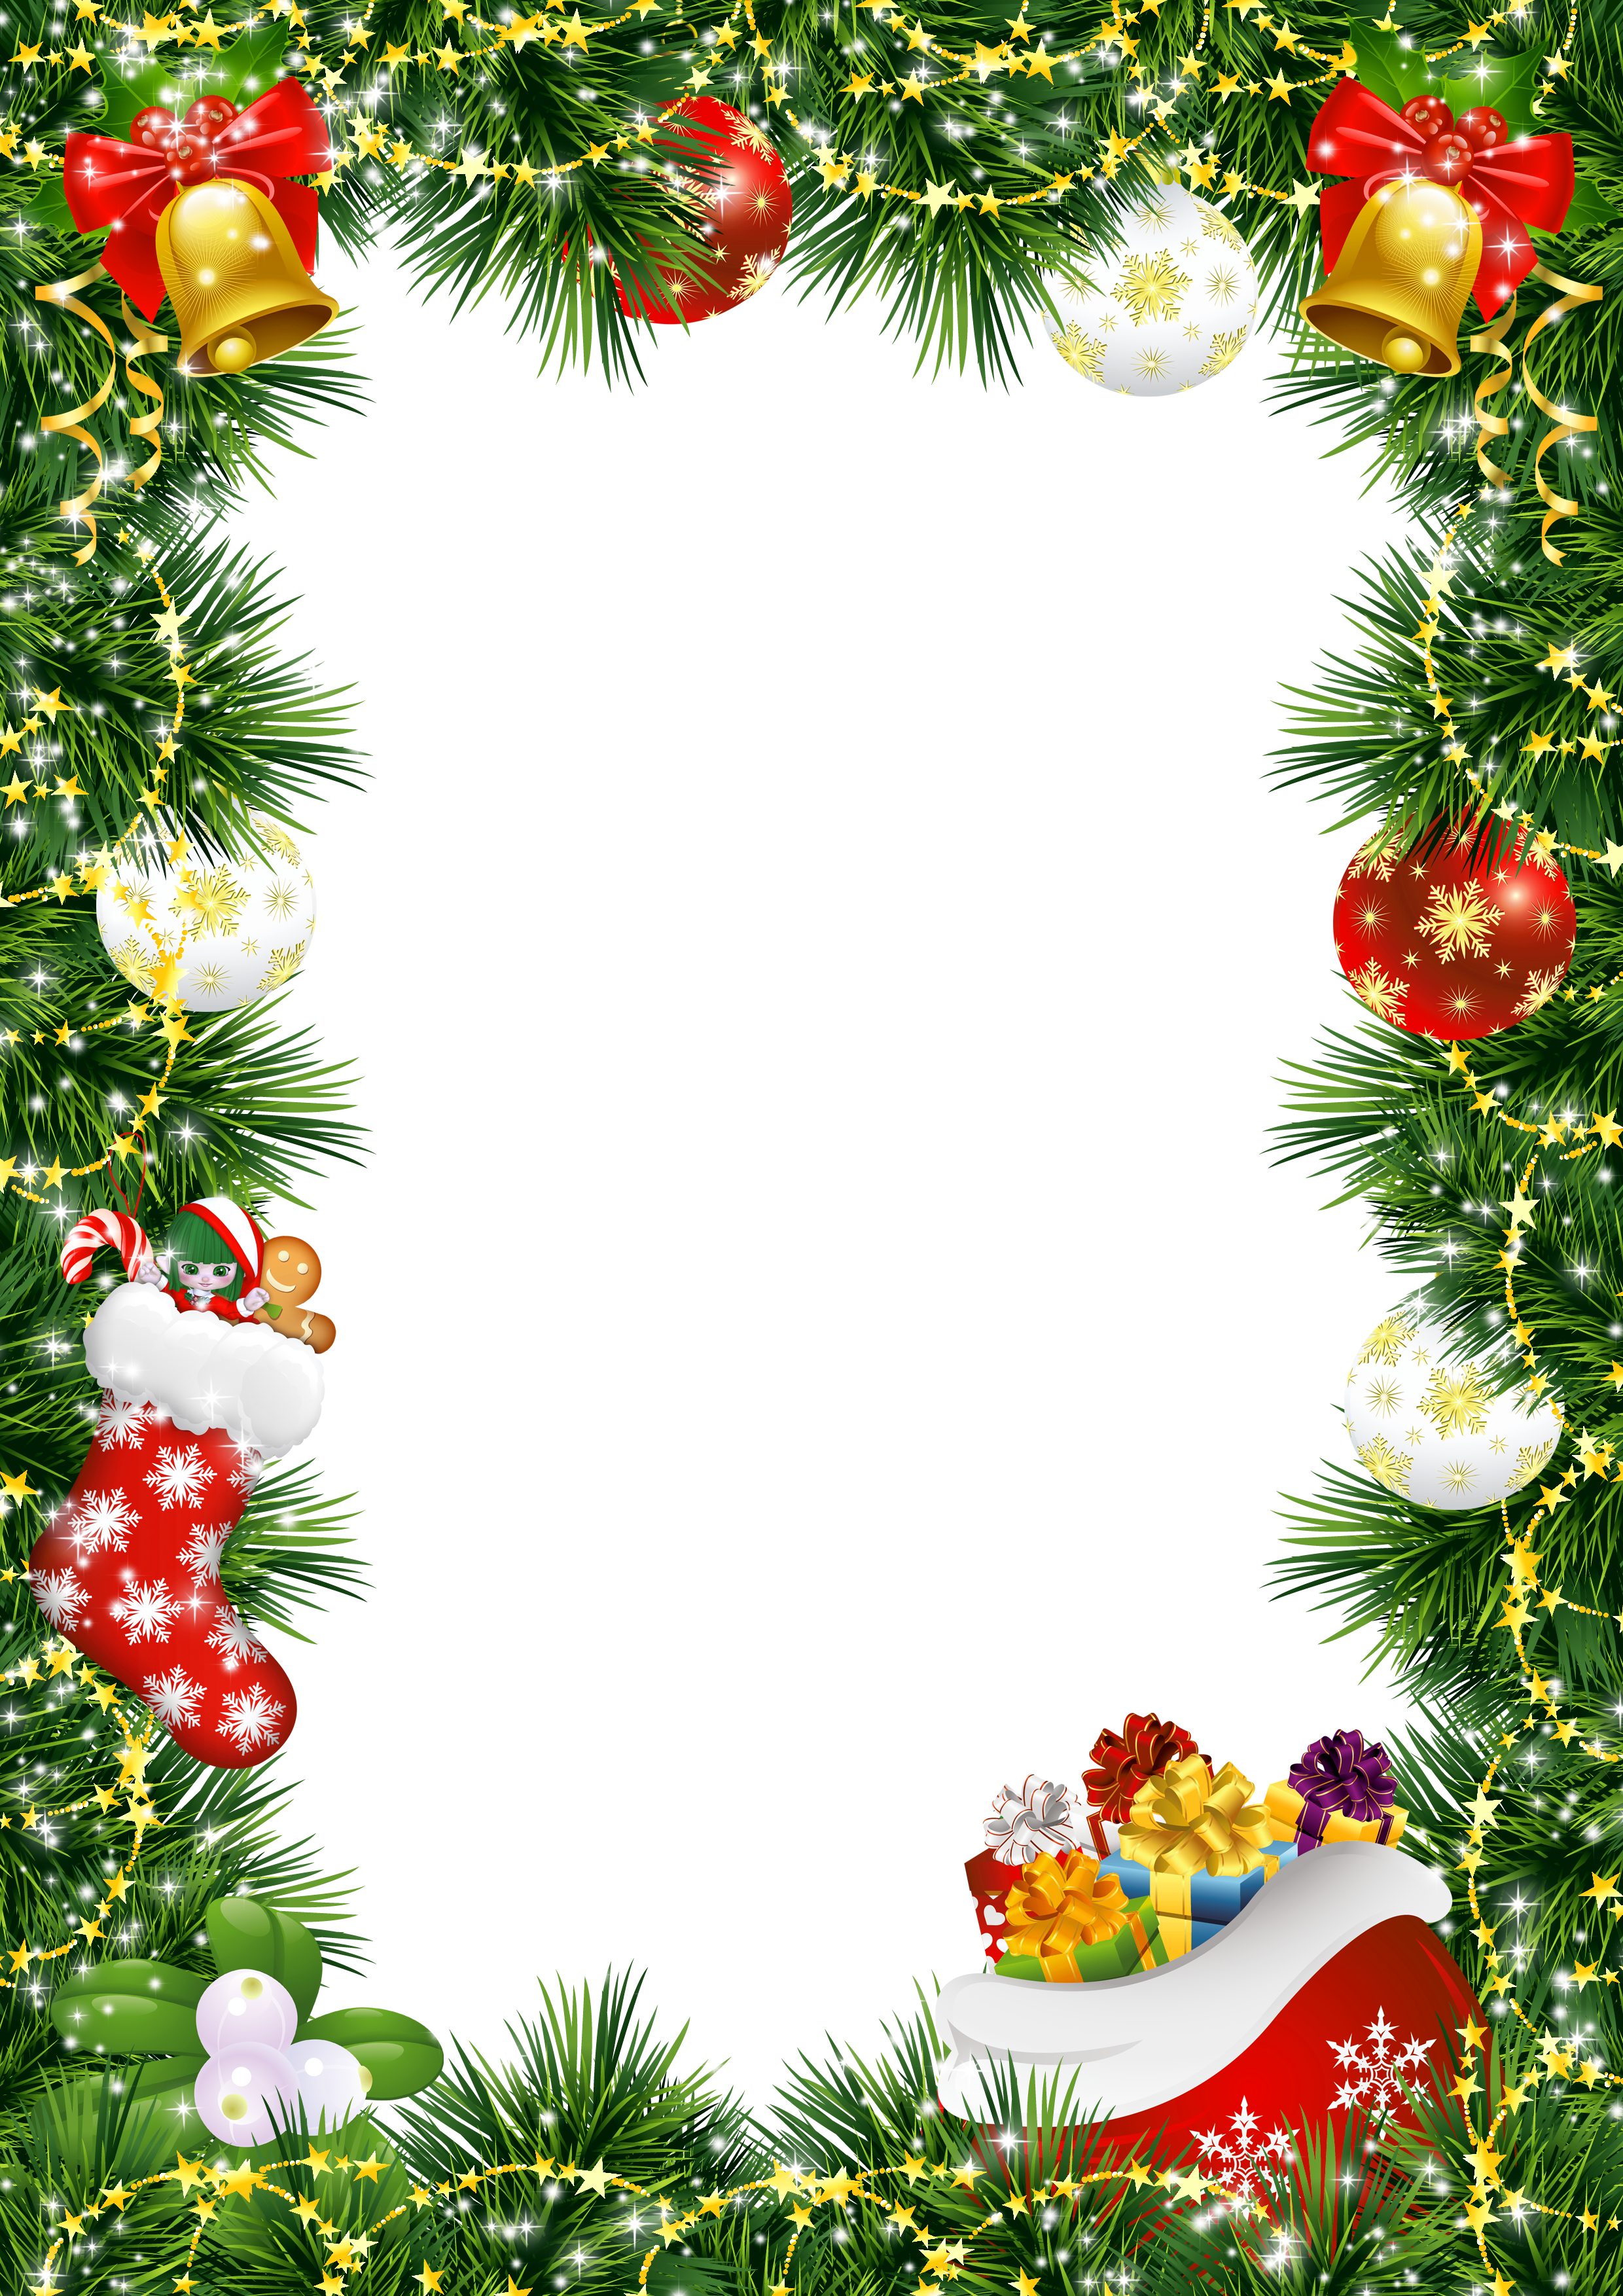 Christmas frame png. Icon clipart web icons